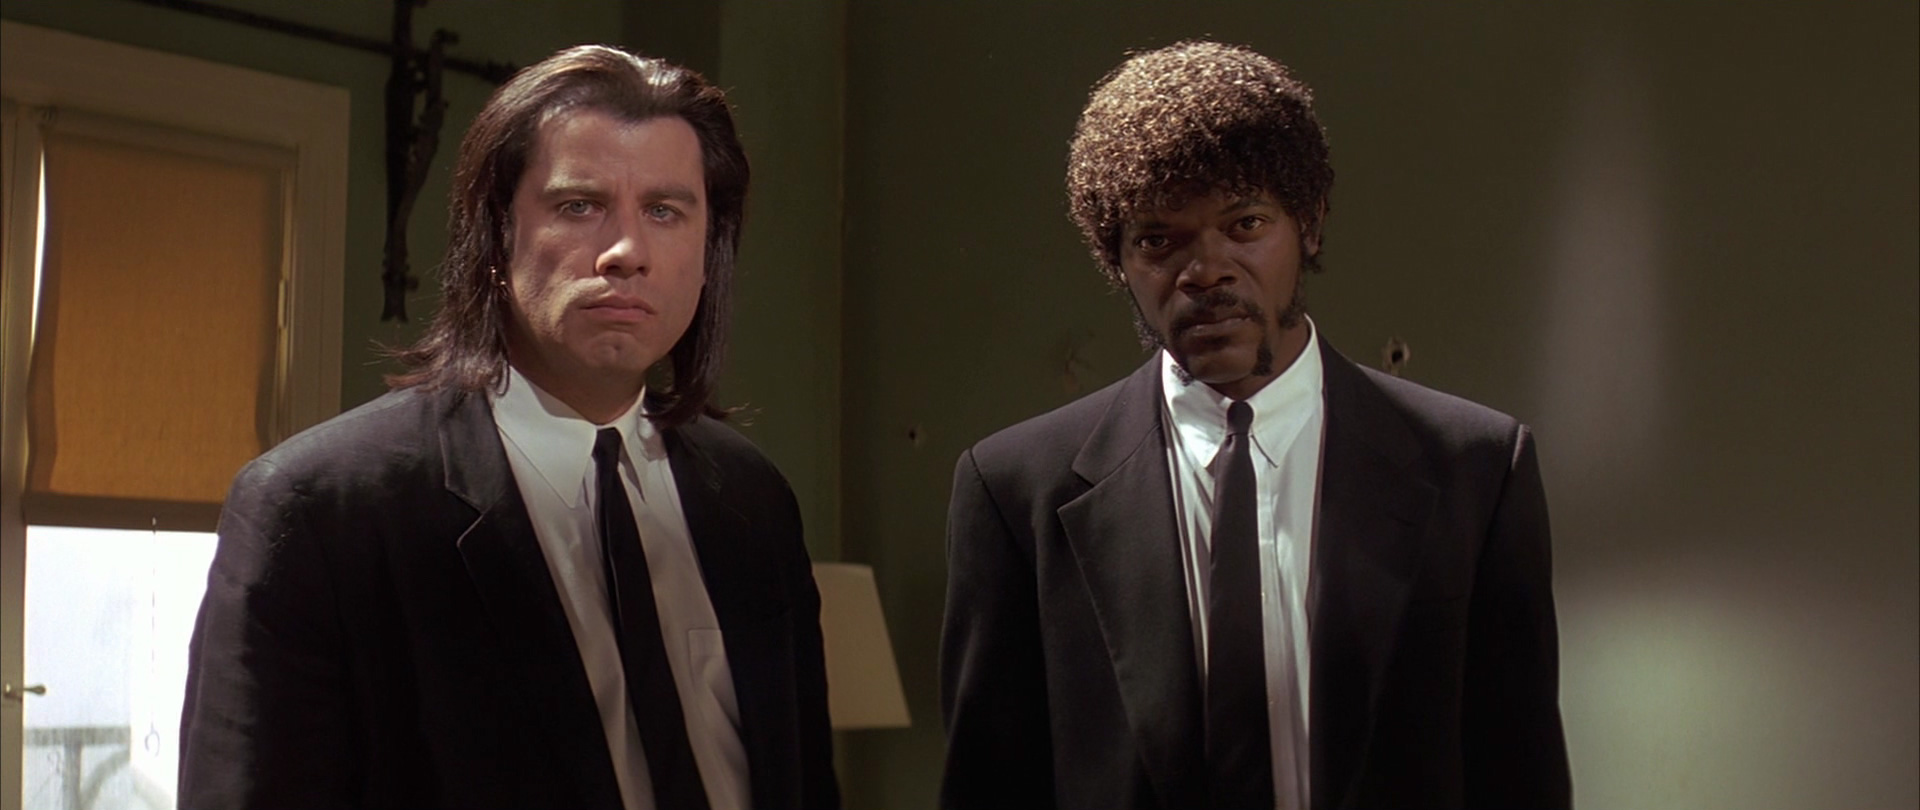 careers of the pulp fiction duo john travolta and samuel l jackson